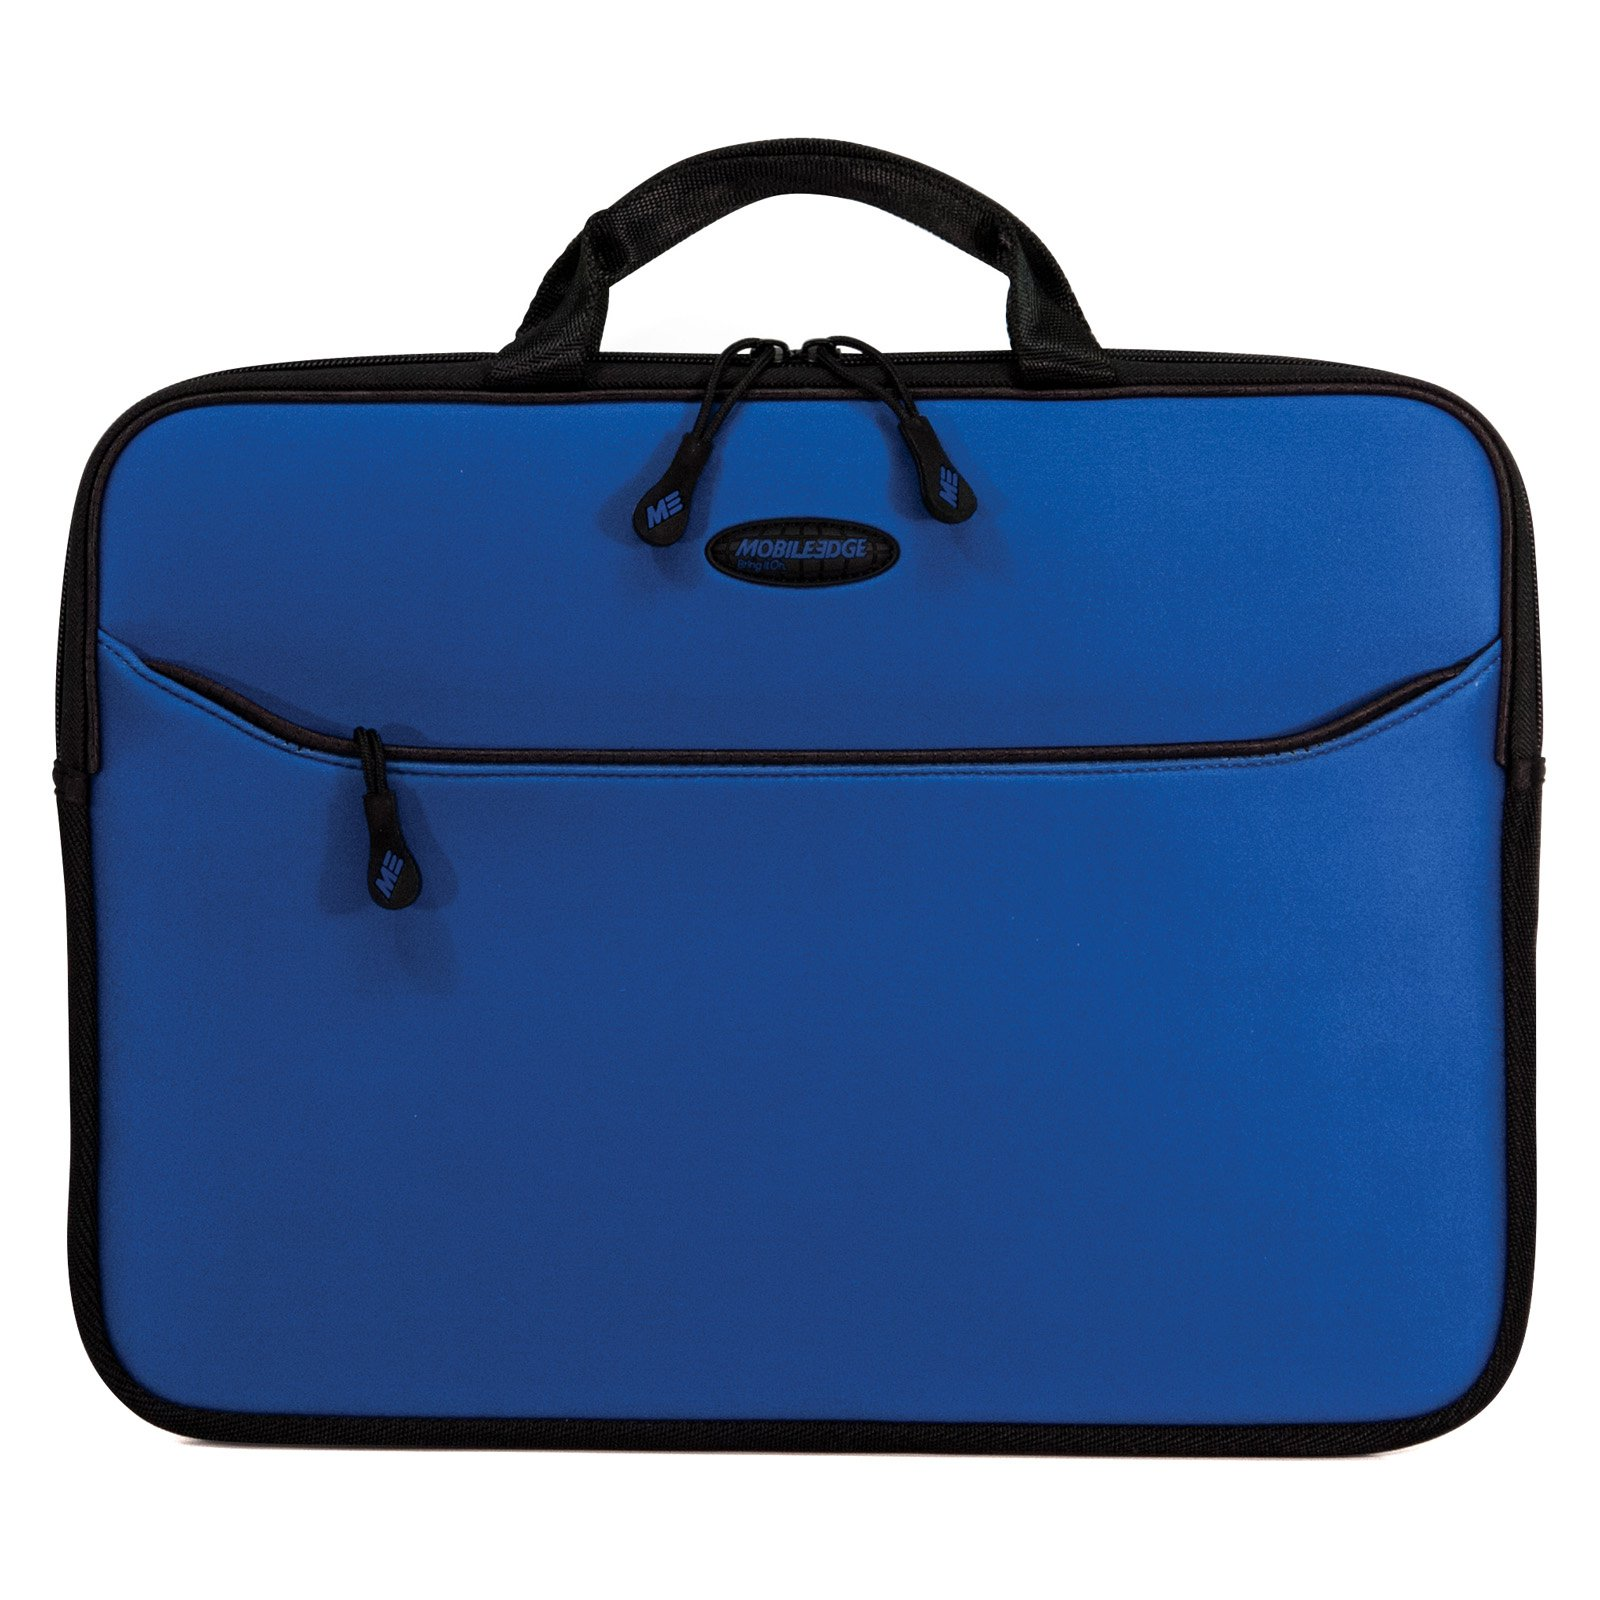 """Mobile Edge MESS5-16 16"""" SlipSuit Laptop Sleeve, Royal Blue by Mobile Edge"""